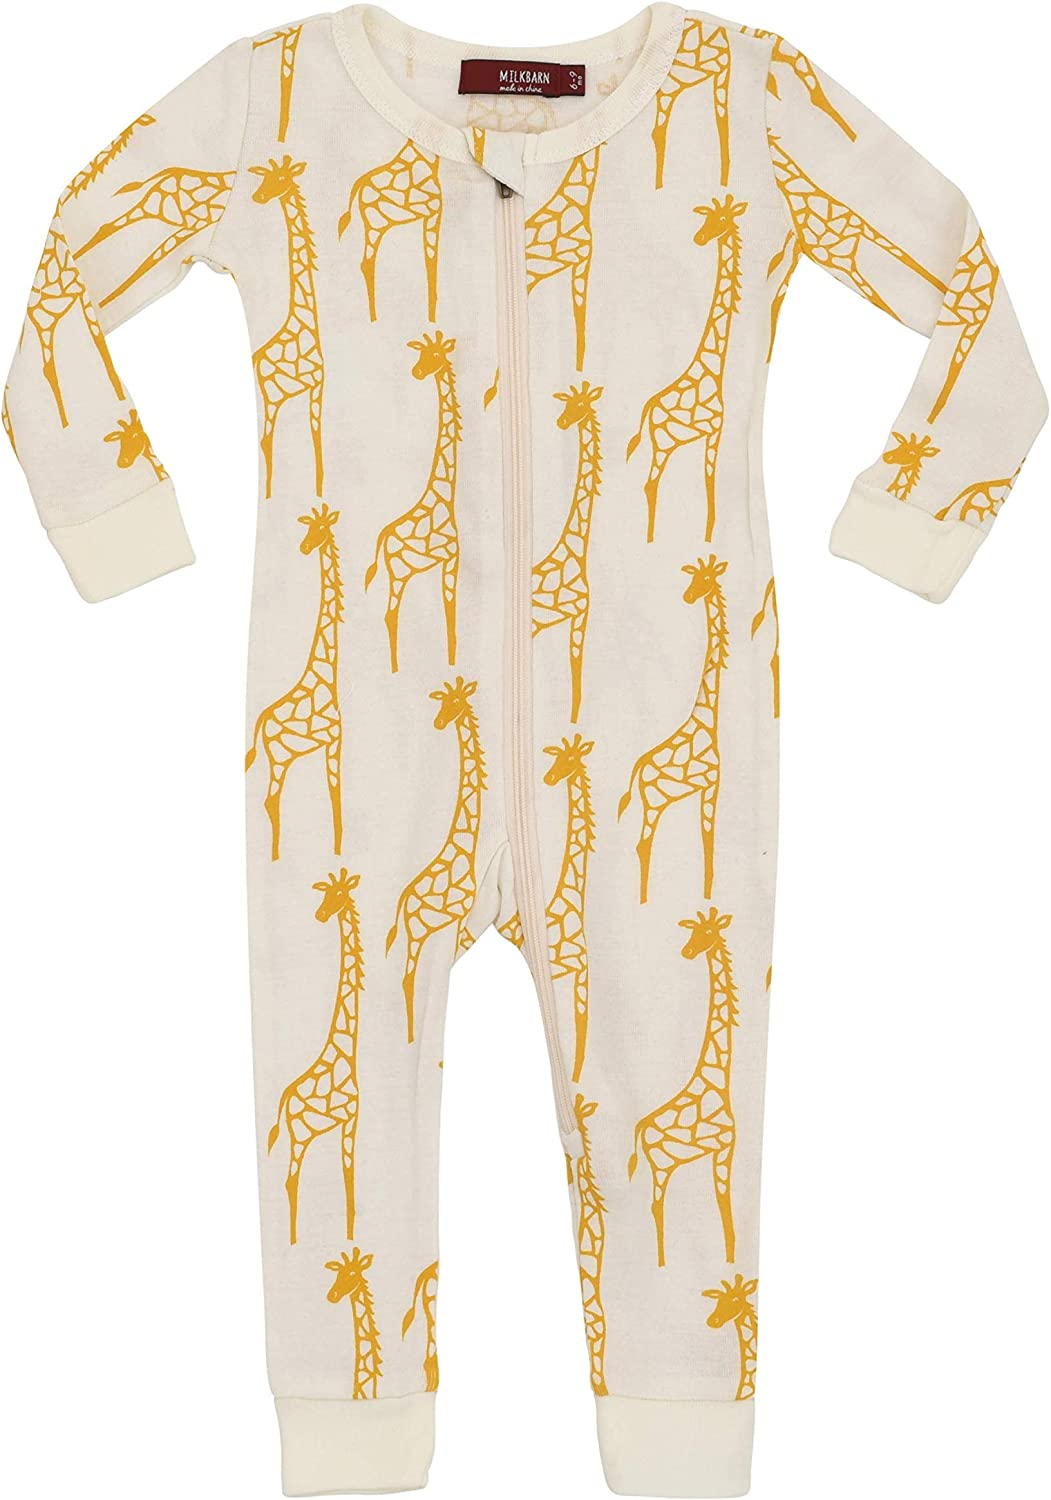 Yellow Giraffe MilkBarn Organic Cotton Zipper Pajama